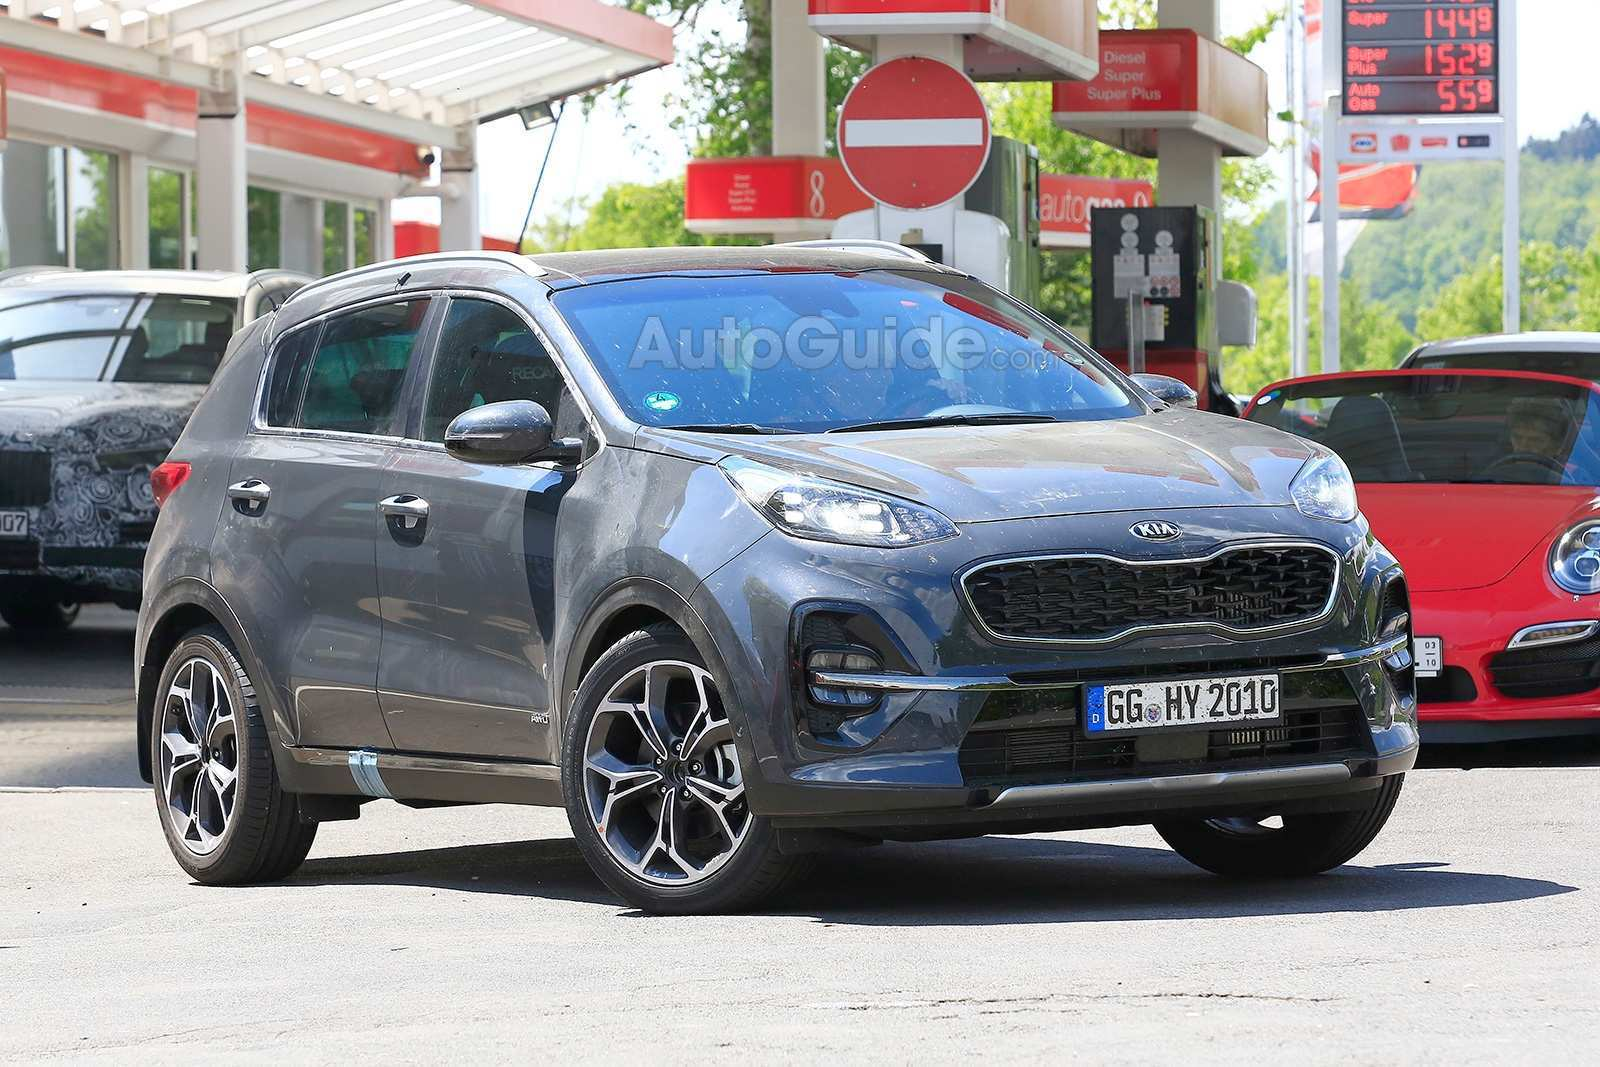 96 Concept of 2019 Kia Sportage Redesign Specs and Review by 2019 Kia Sportage Redesign